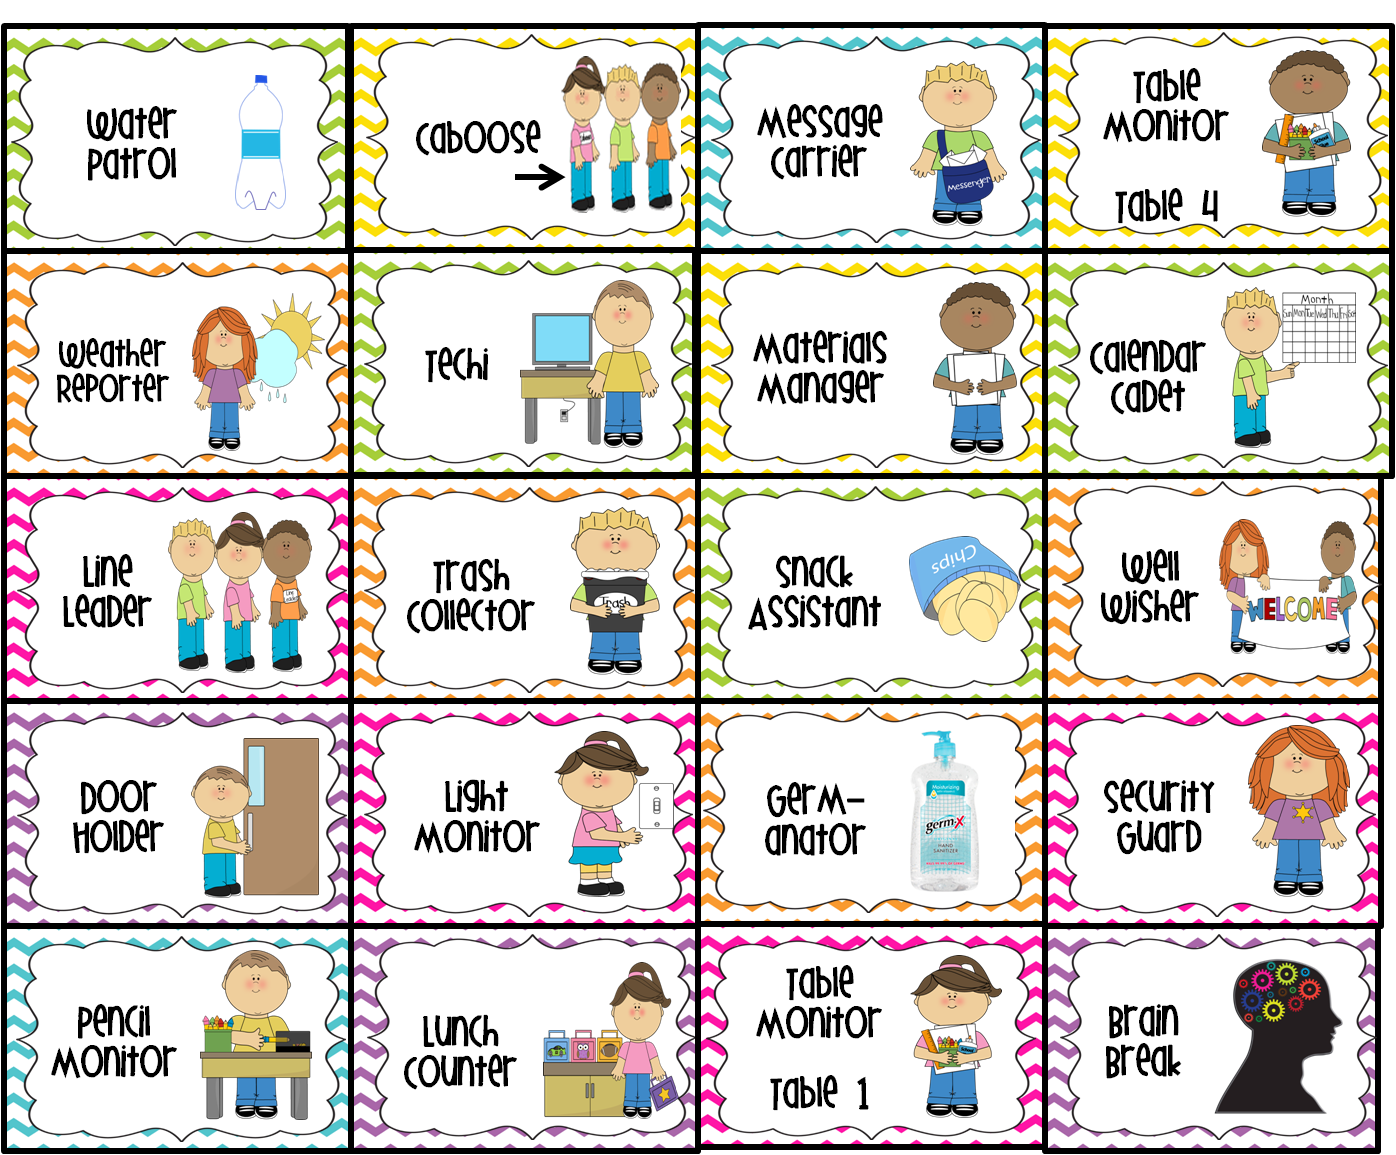 ... message carrier, table monitor 1-4, weather ... Different Jobs Clipart